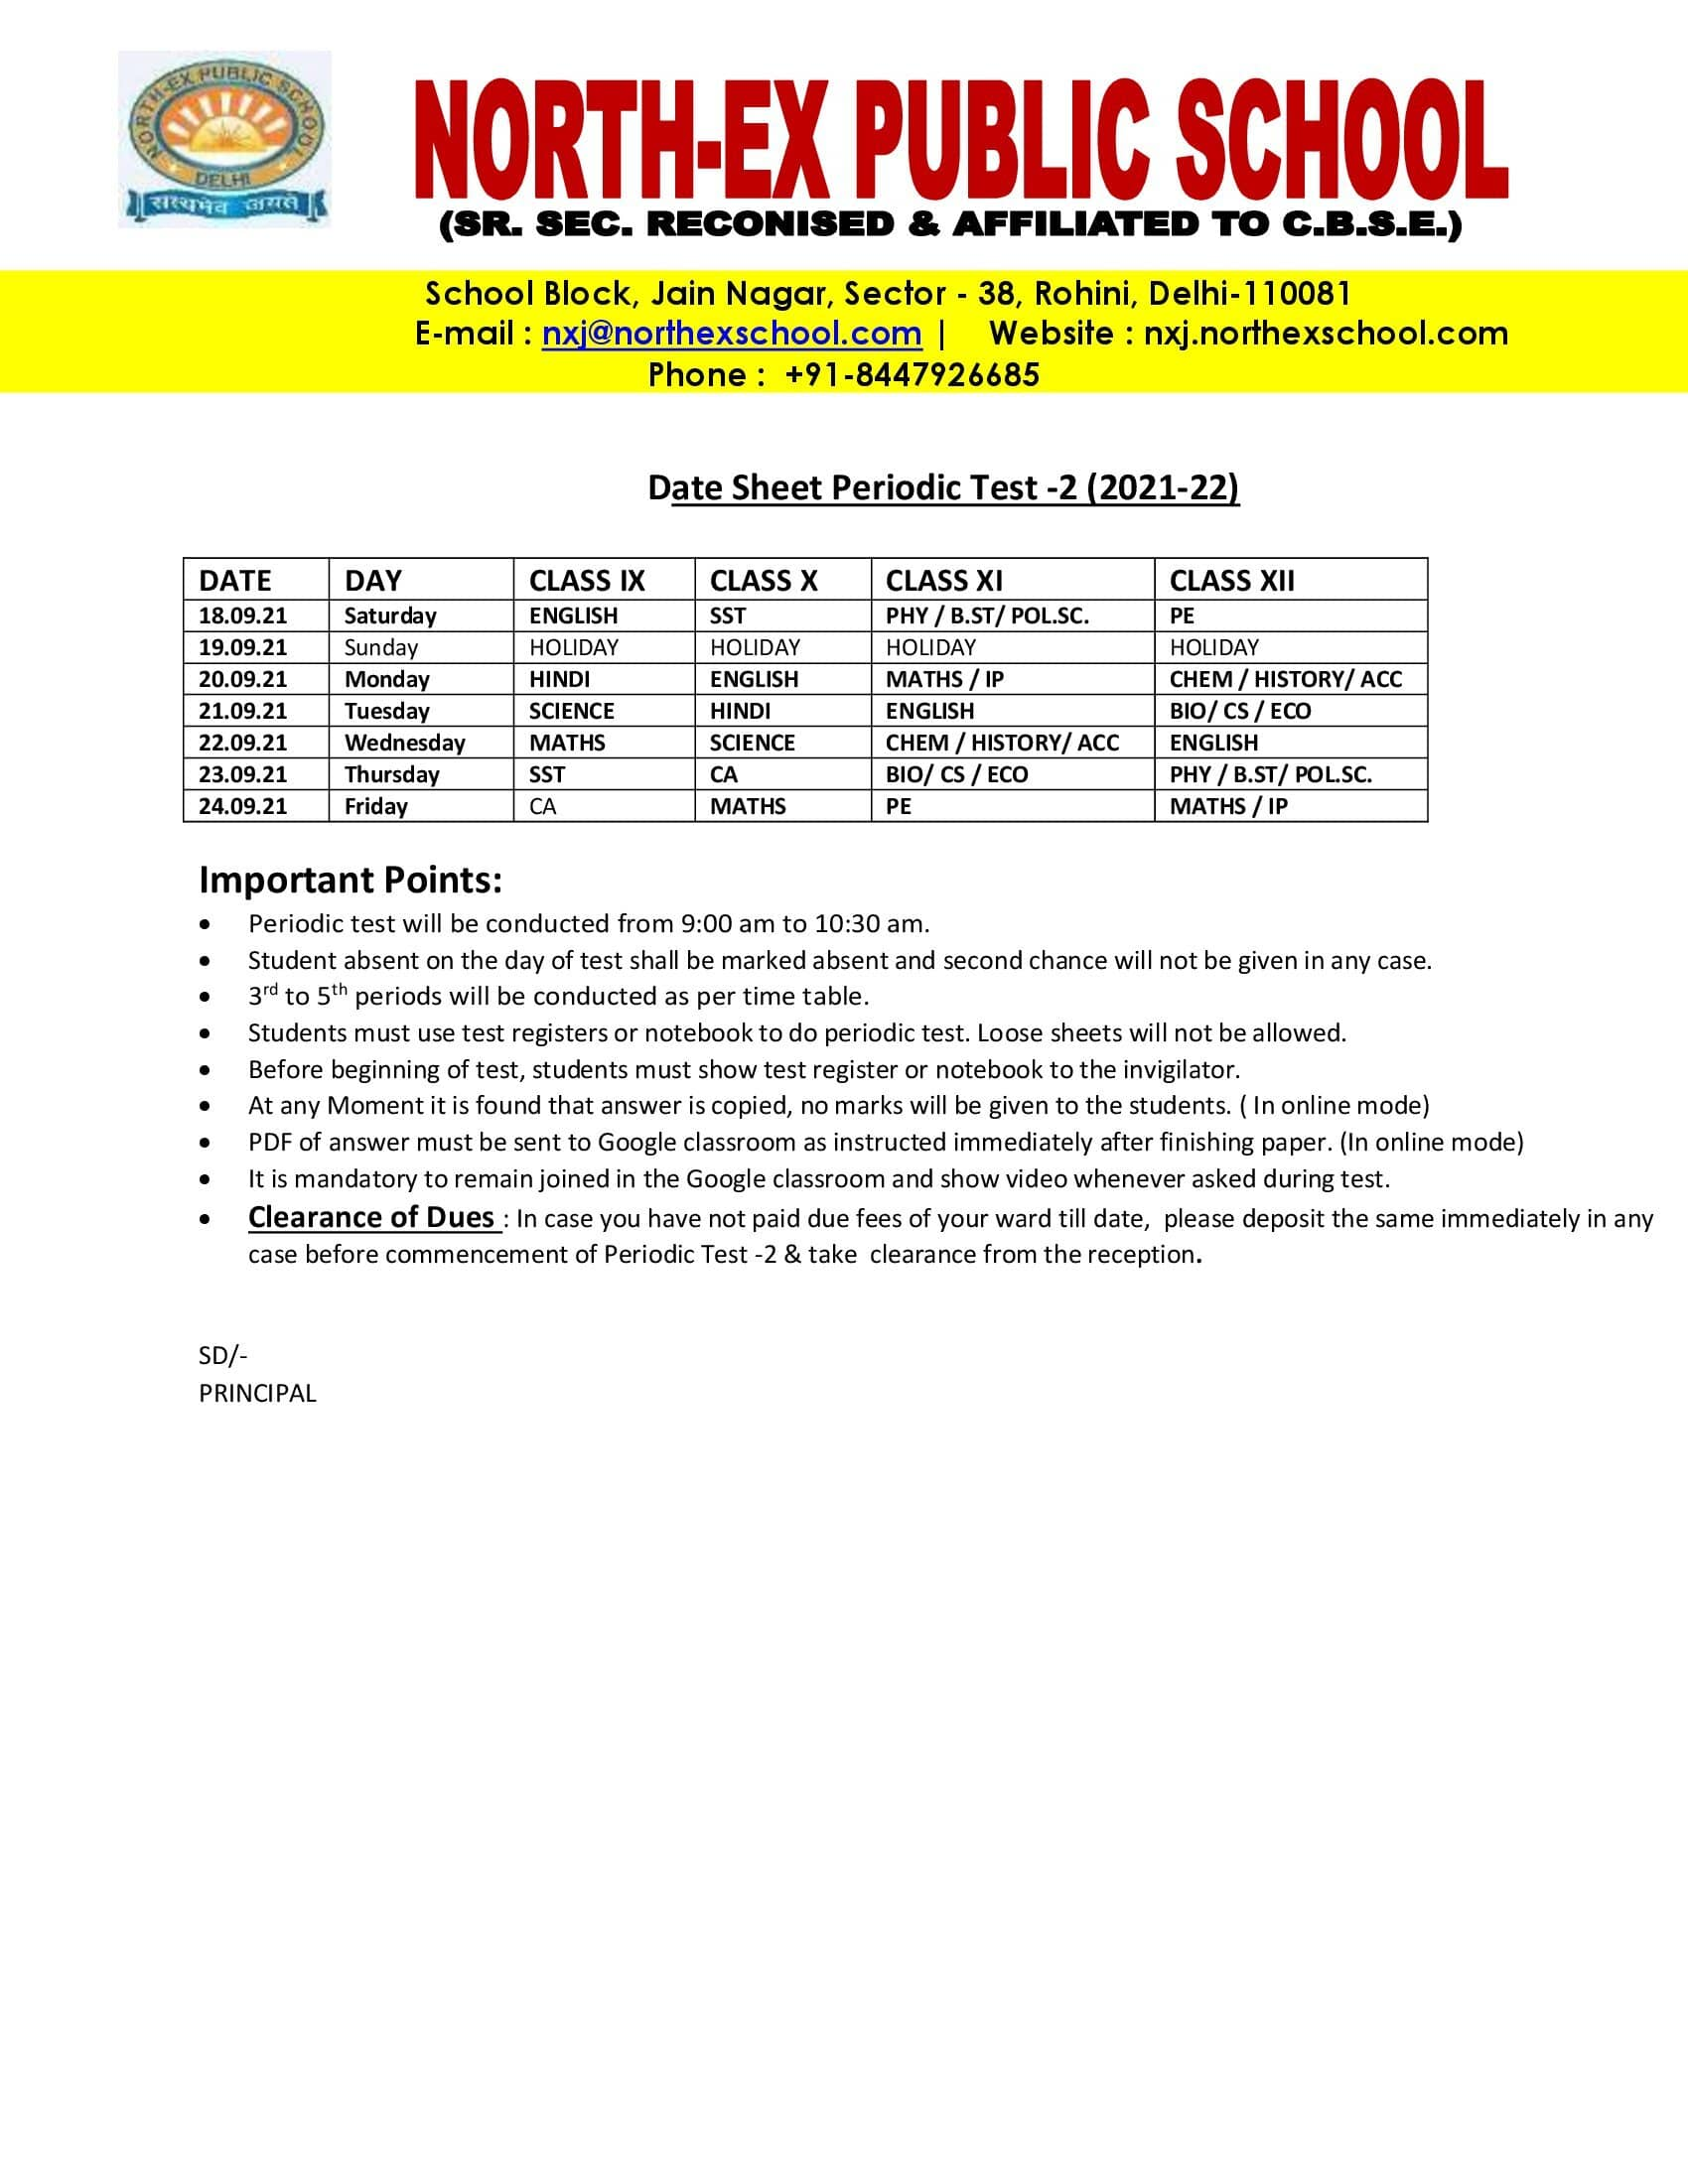 Date Sheet Periodic Test -2 Class 9 To 12 2021-22